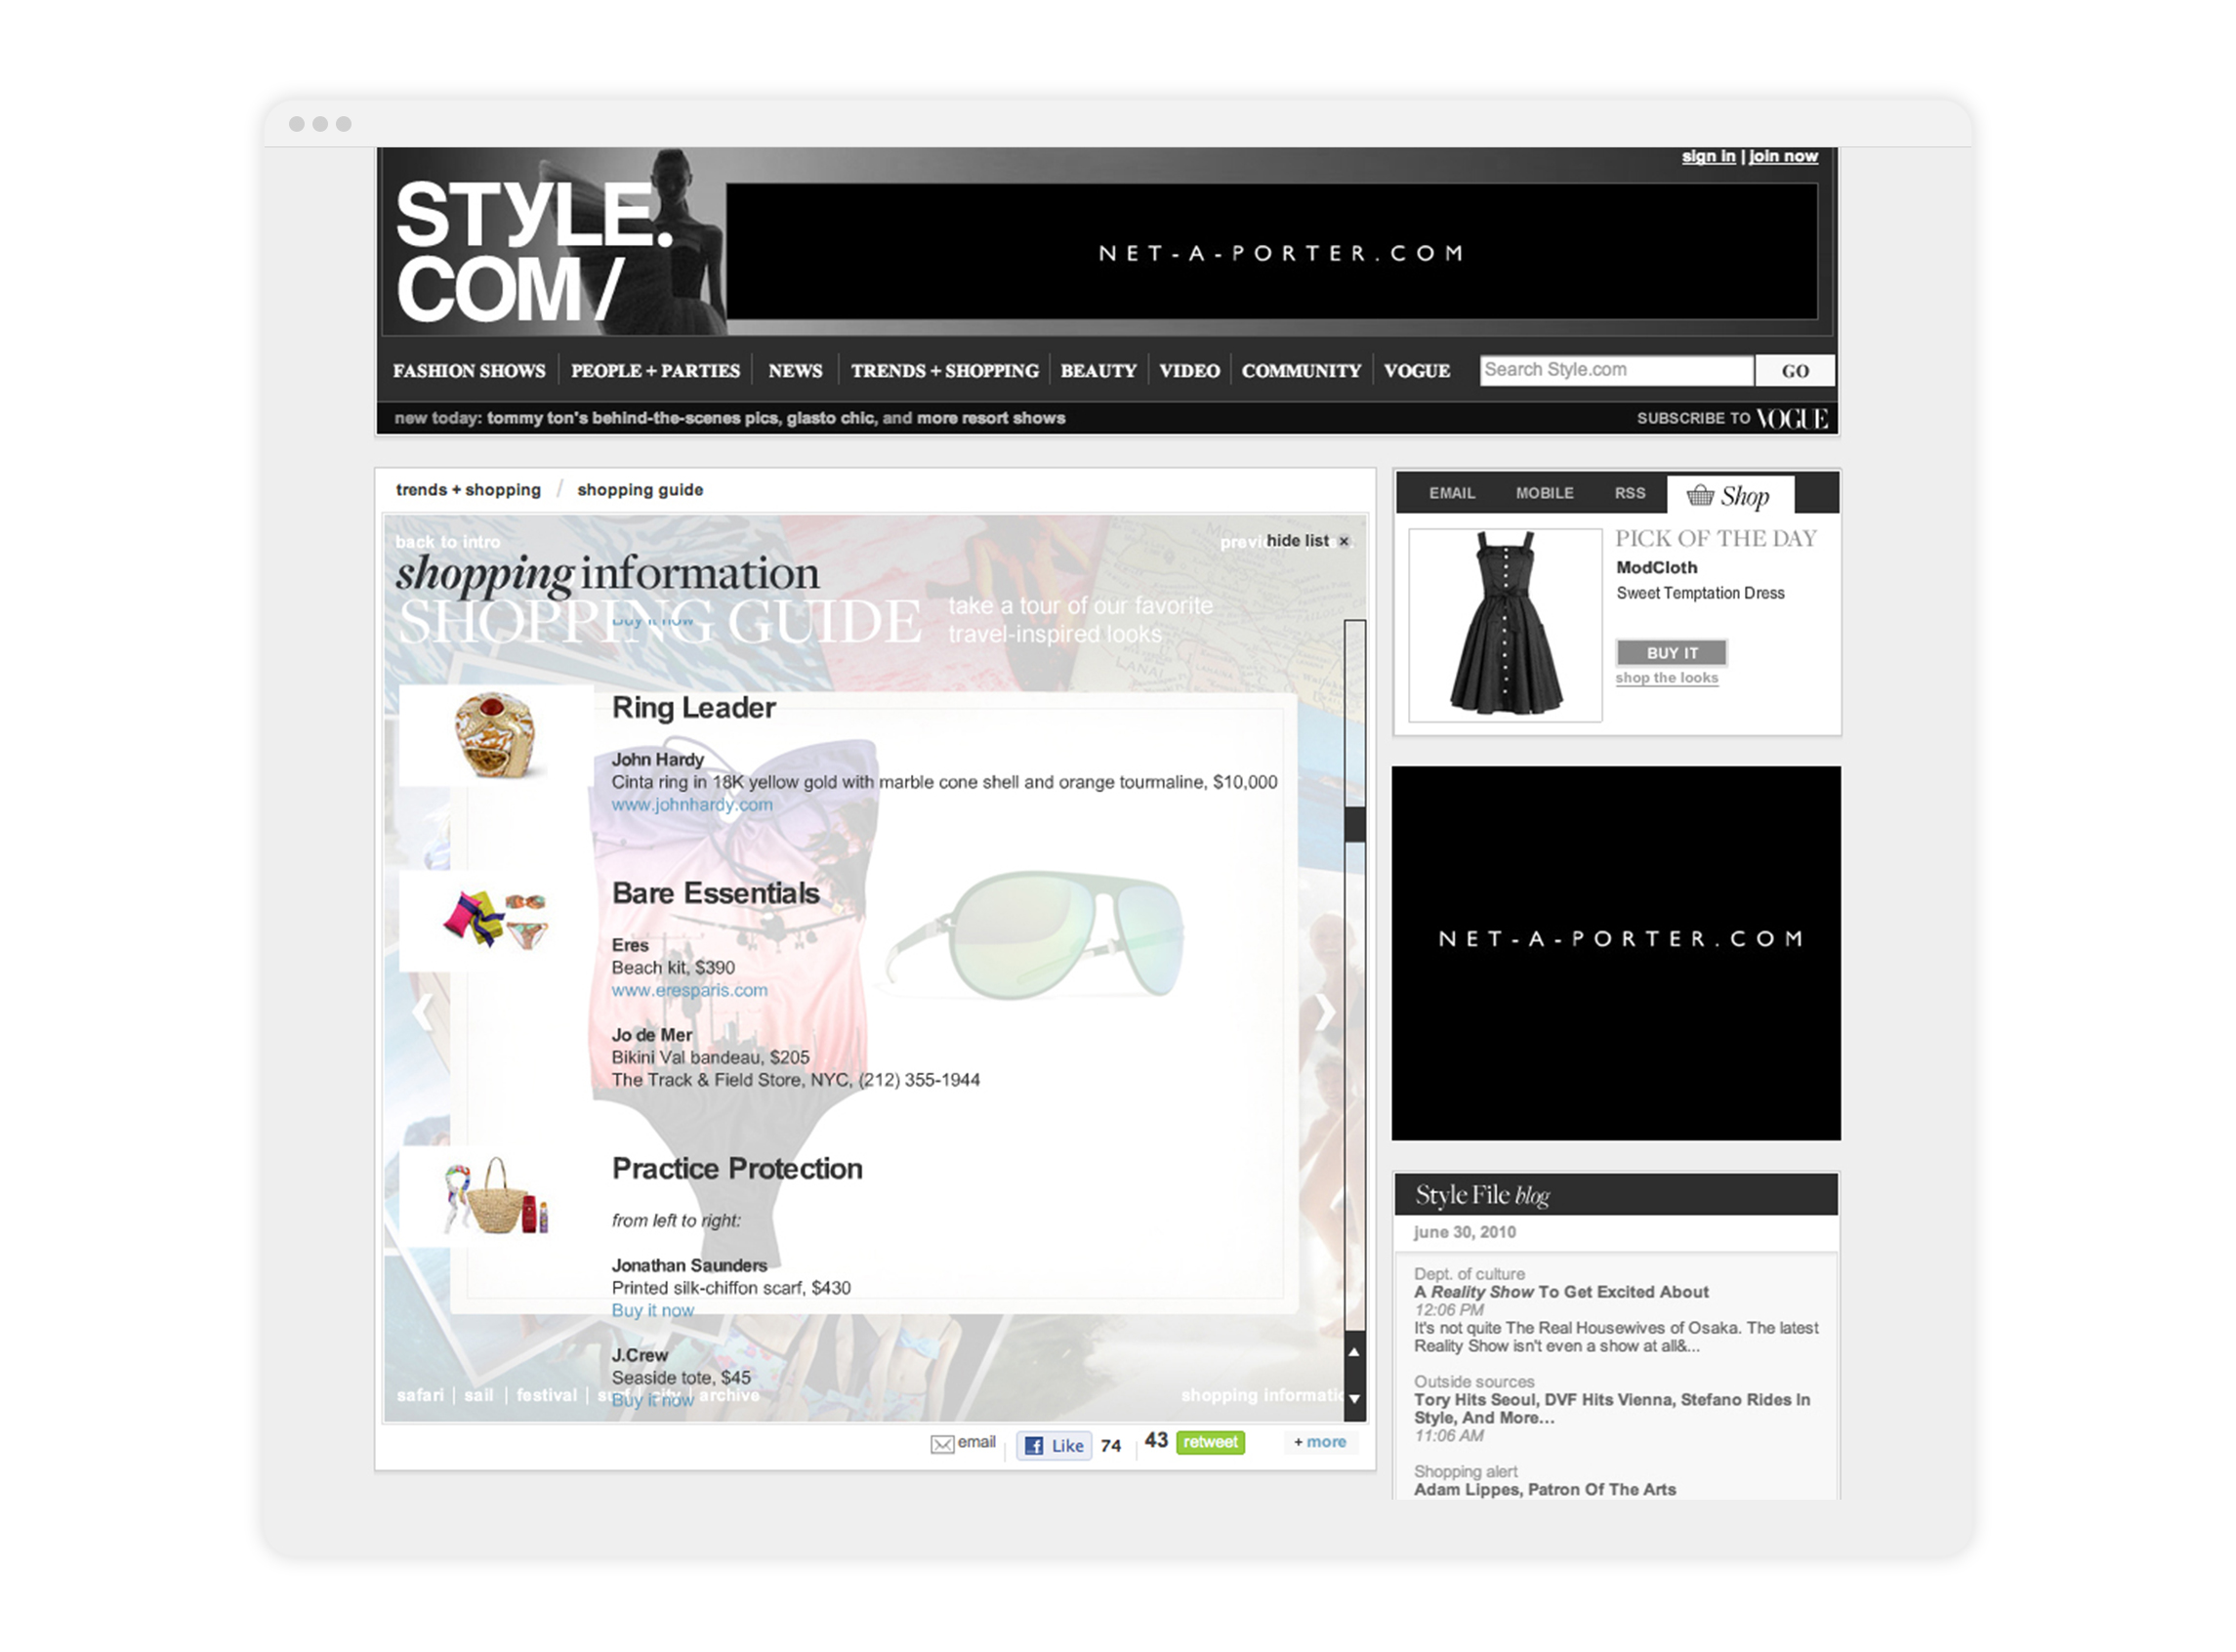 SS-Style-SummerShoppingGuide-04.jpg